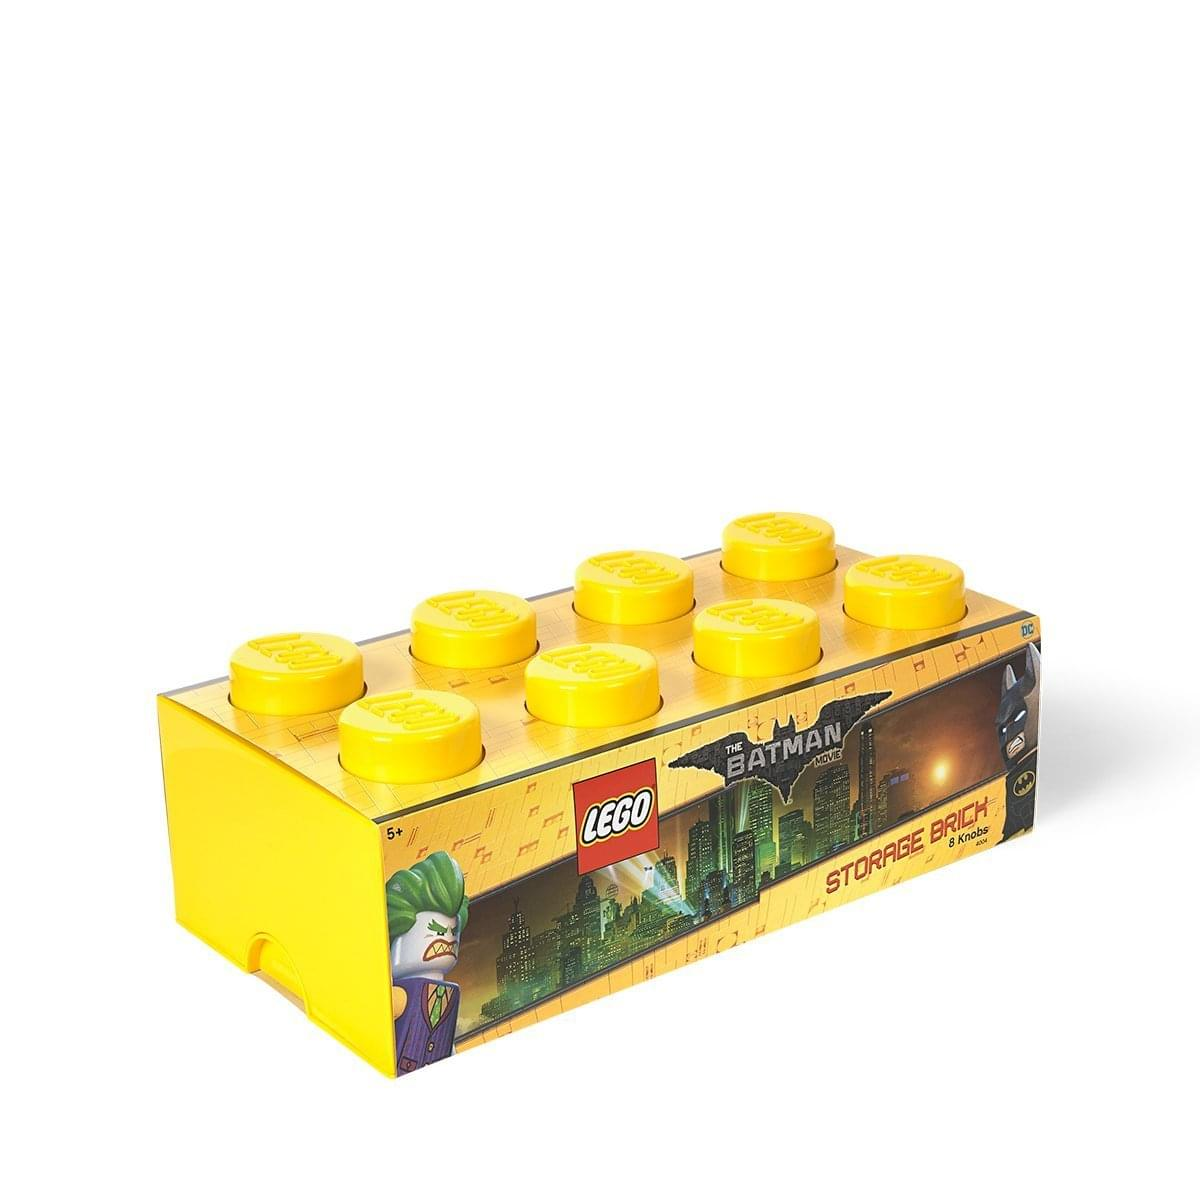 LEGO Storage Brick 8, Bright Yellow (Batman)